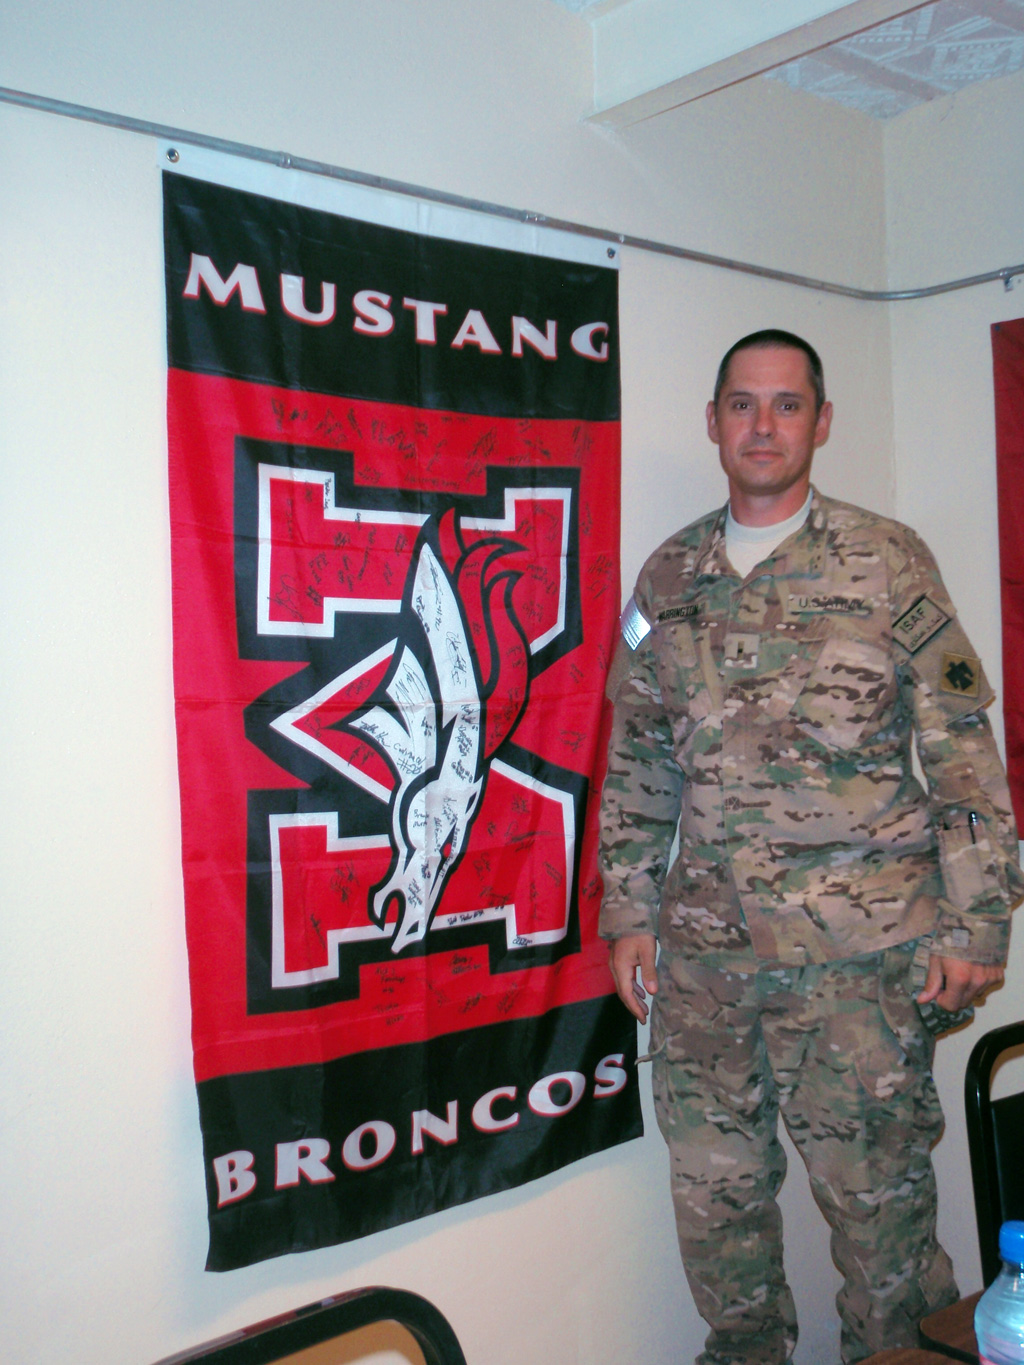 Warrant Officer 2 Todd Warrington stands in front of the Mustang flag his son, Dakaota Warrington sent him. All of the Mustang players signed the flag.